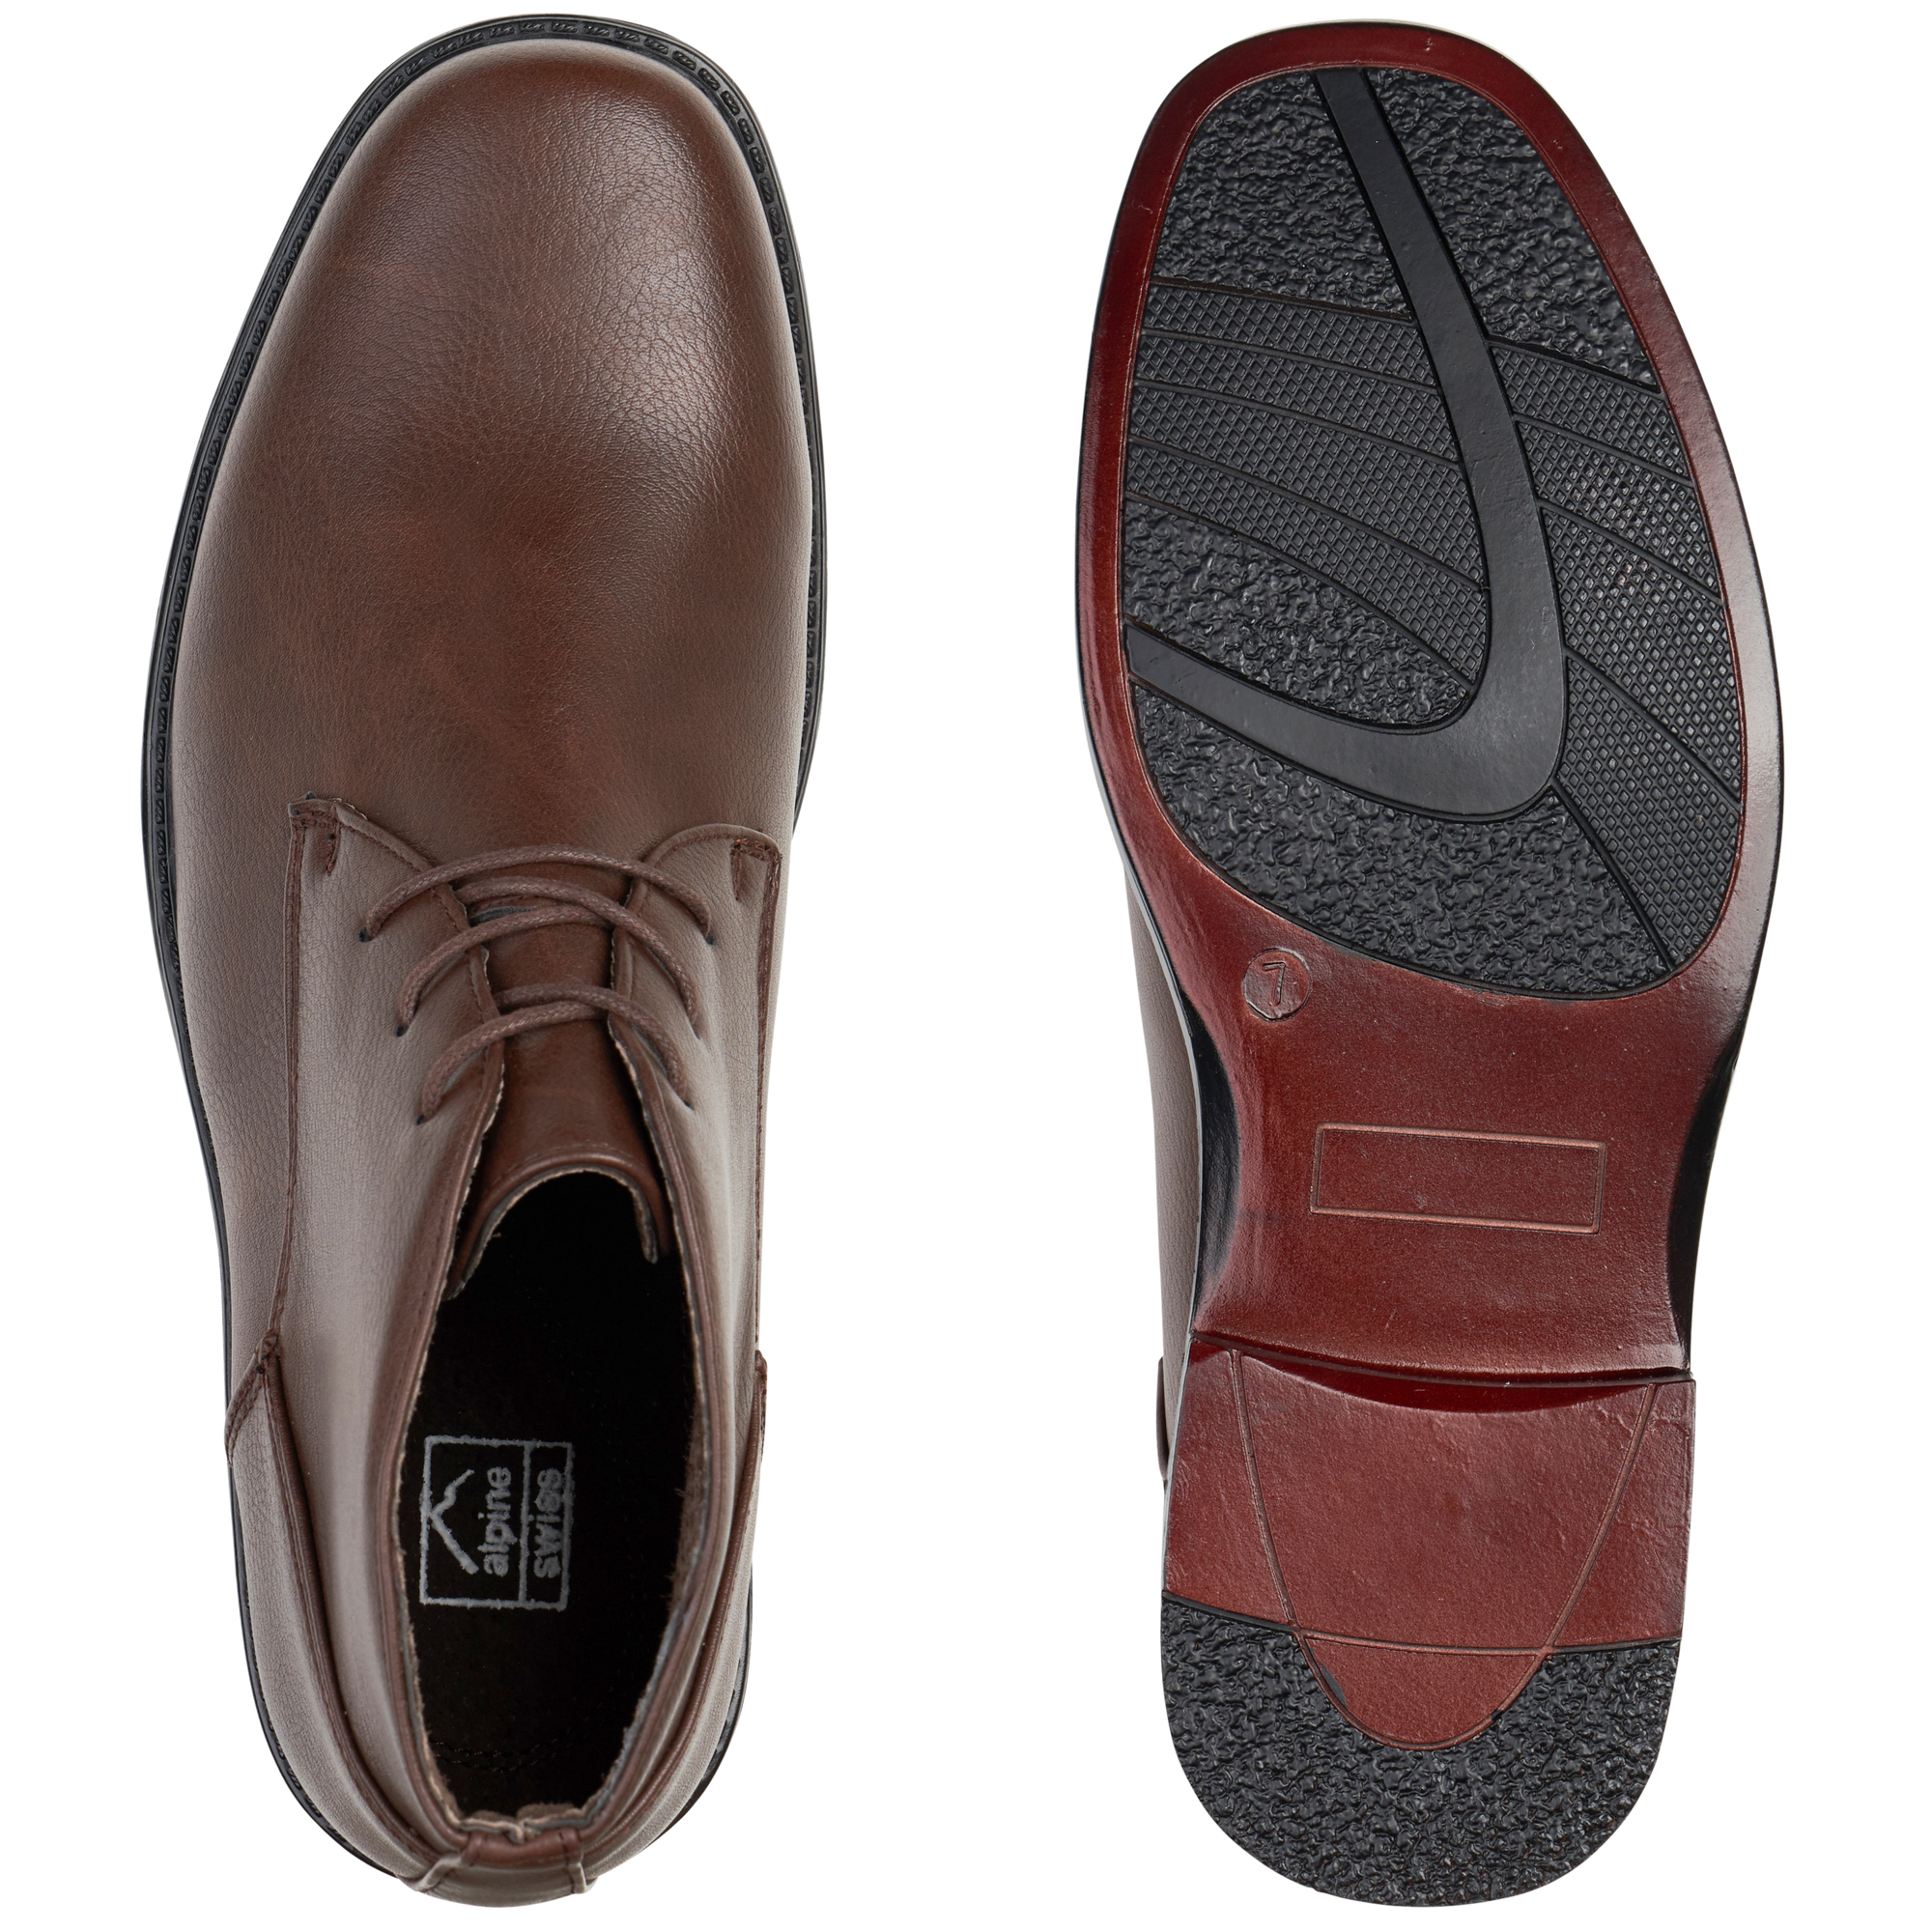 Alpine-Swiss-Mens-Ankle-Boots-Dressy-Casual-Leather-Lined-Dress-Shoes-Lace-up-NW miniature 21